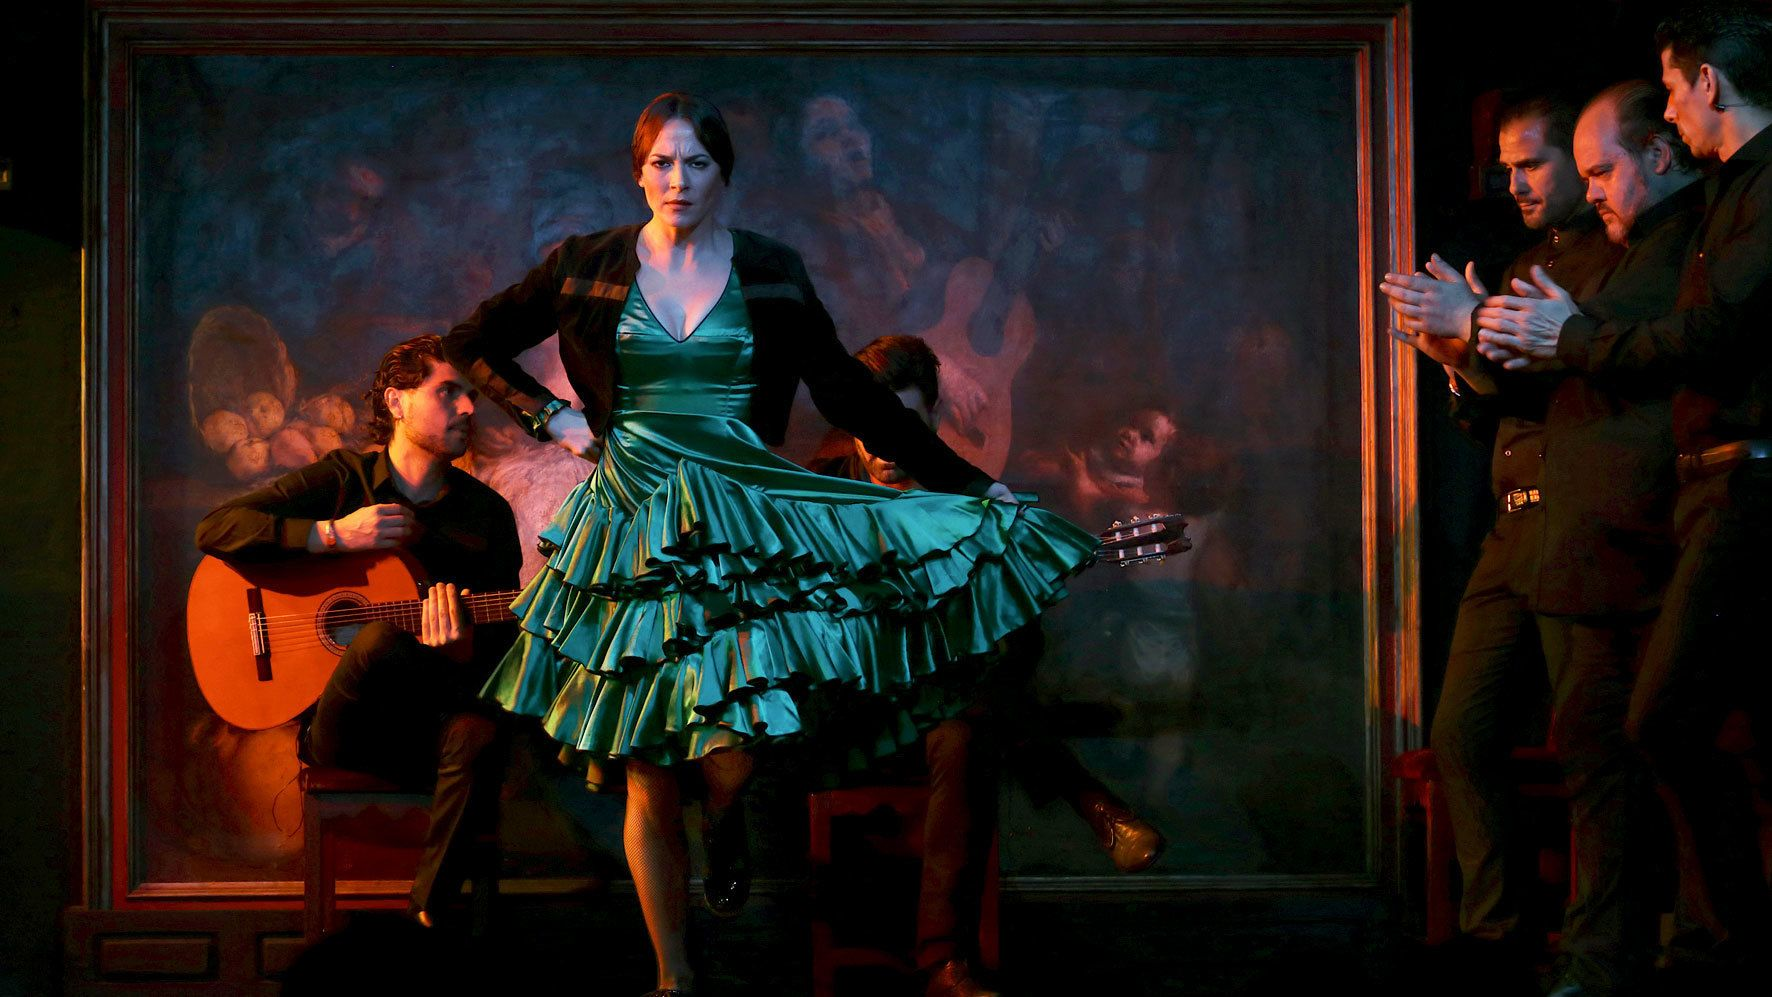 Female dancer performing to live music during the Flamenco Show at Corral de la Moreria in Madrid